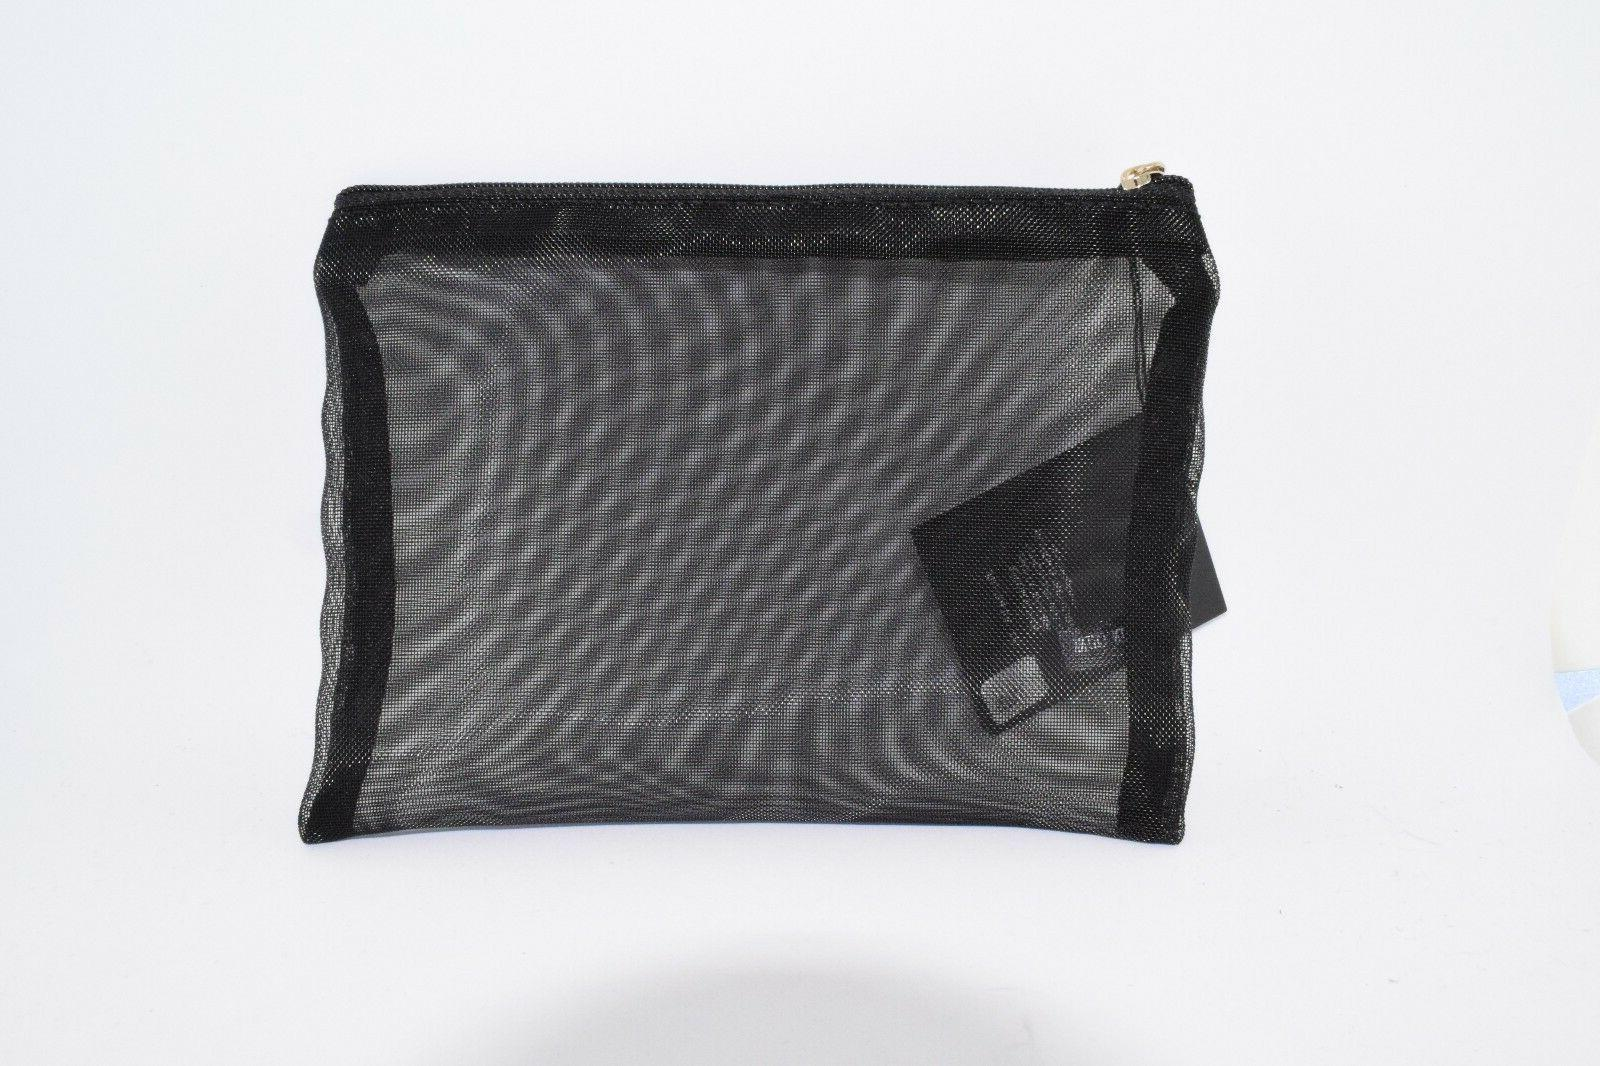 Giorgio Black Cosmetic Makeup Clutch NWT 7.5 6 X